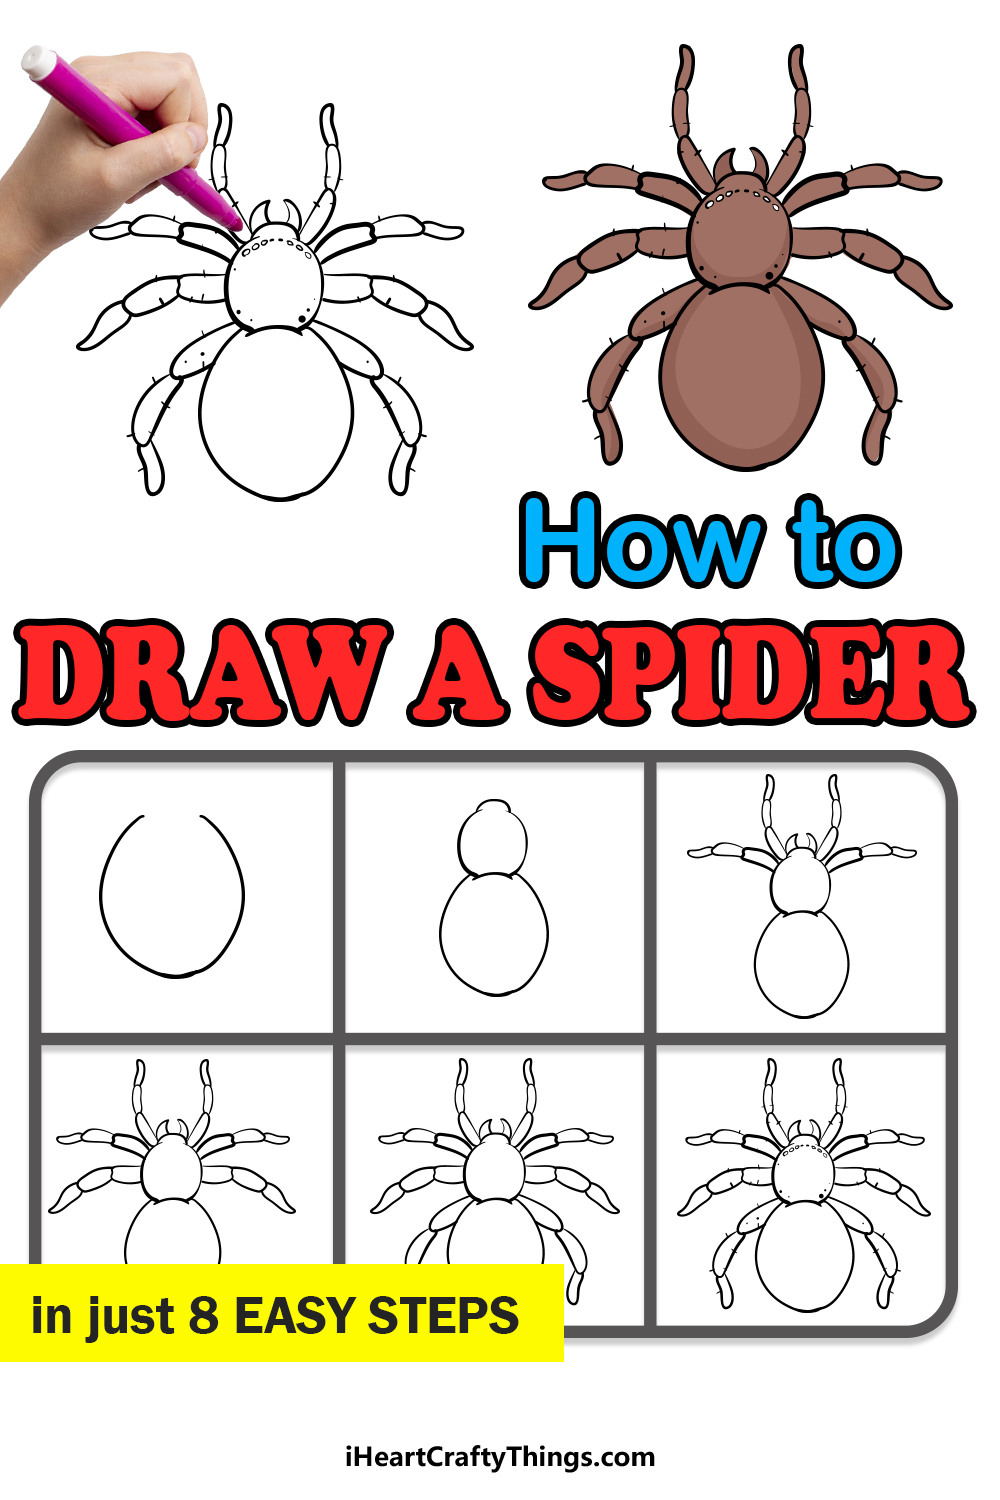 how to draw a spider in 8 easy steps